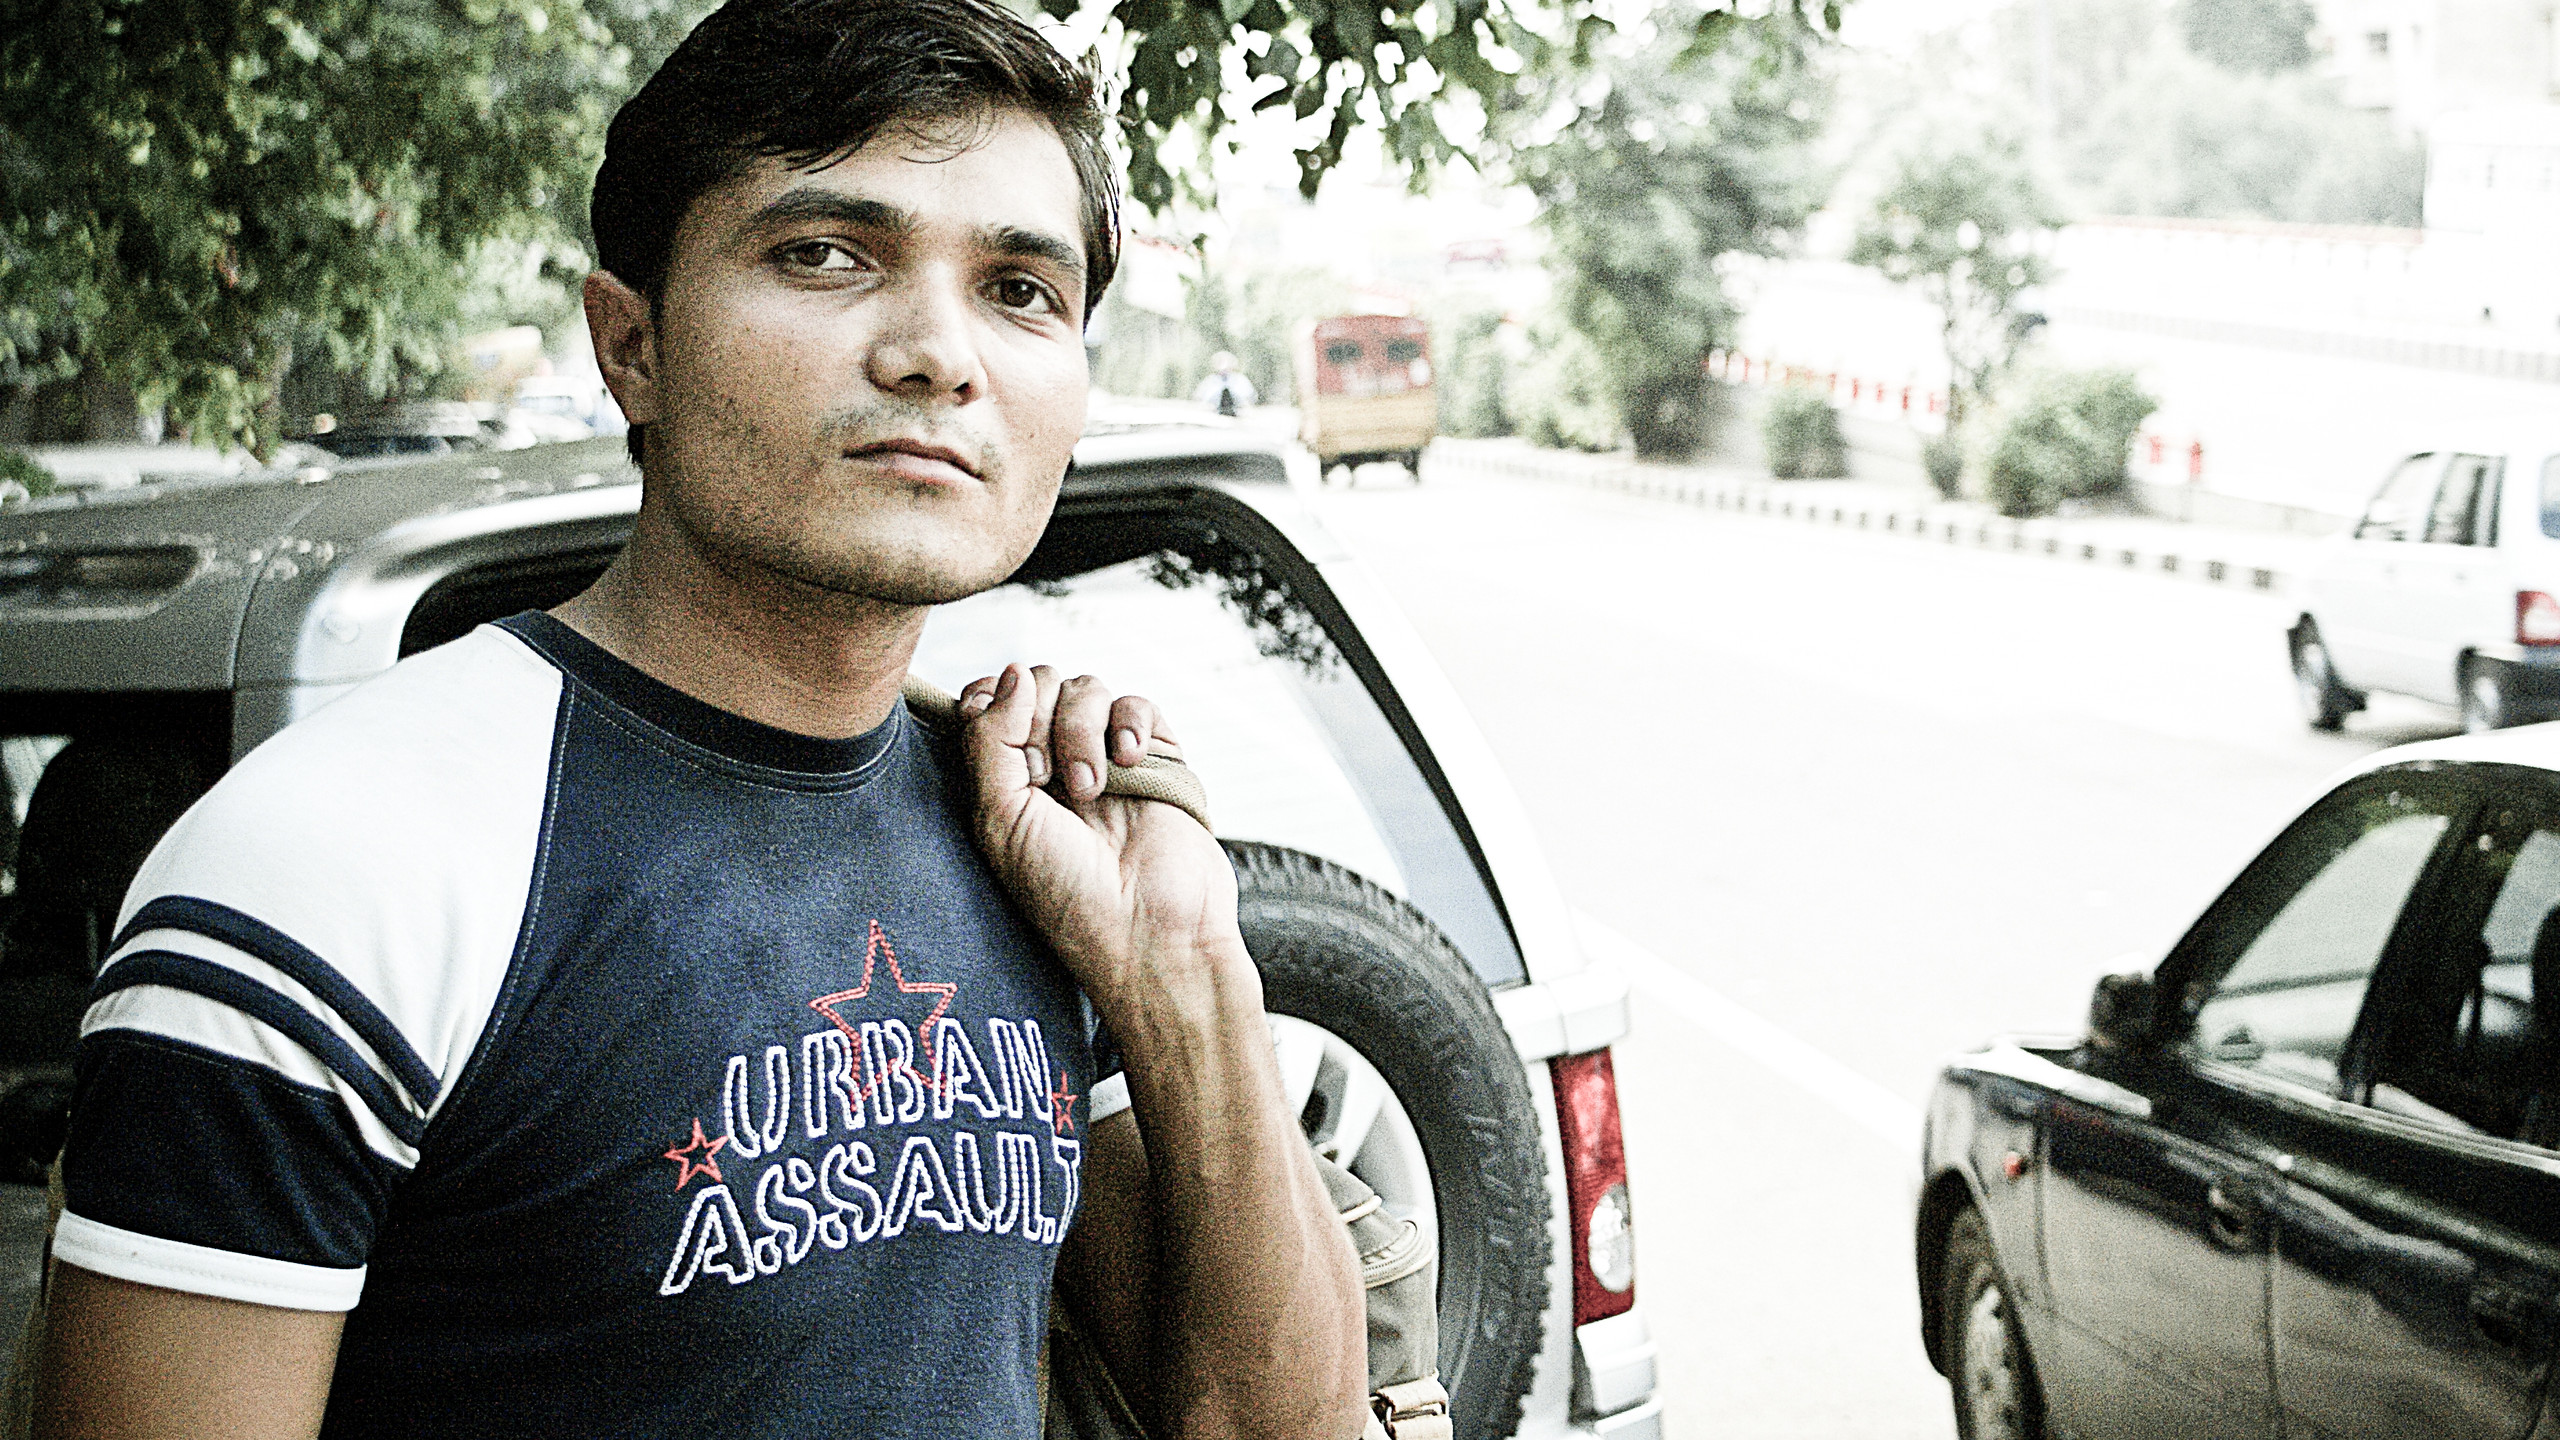 Thousands of youth reach metropolises like Delhi every day to look for jobs and a better life